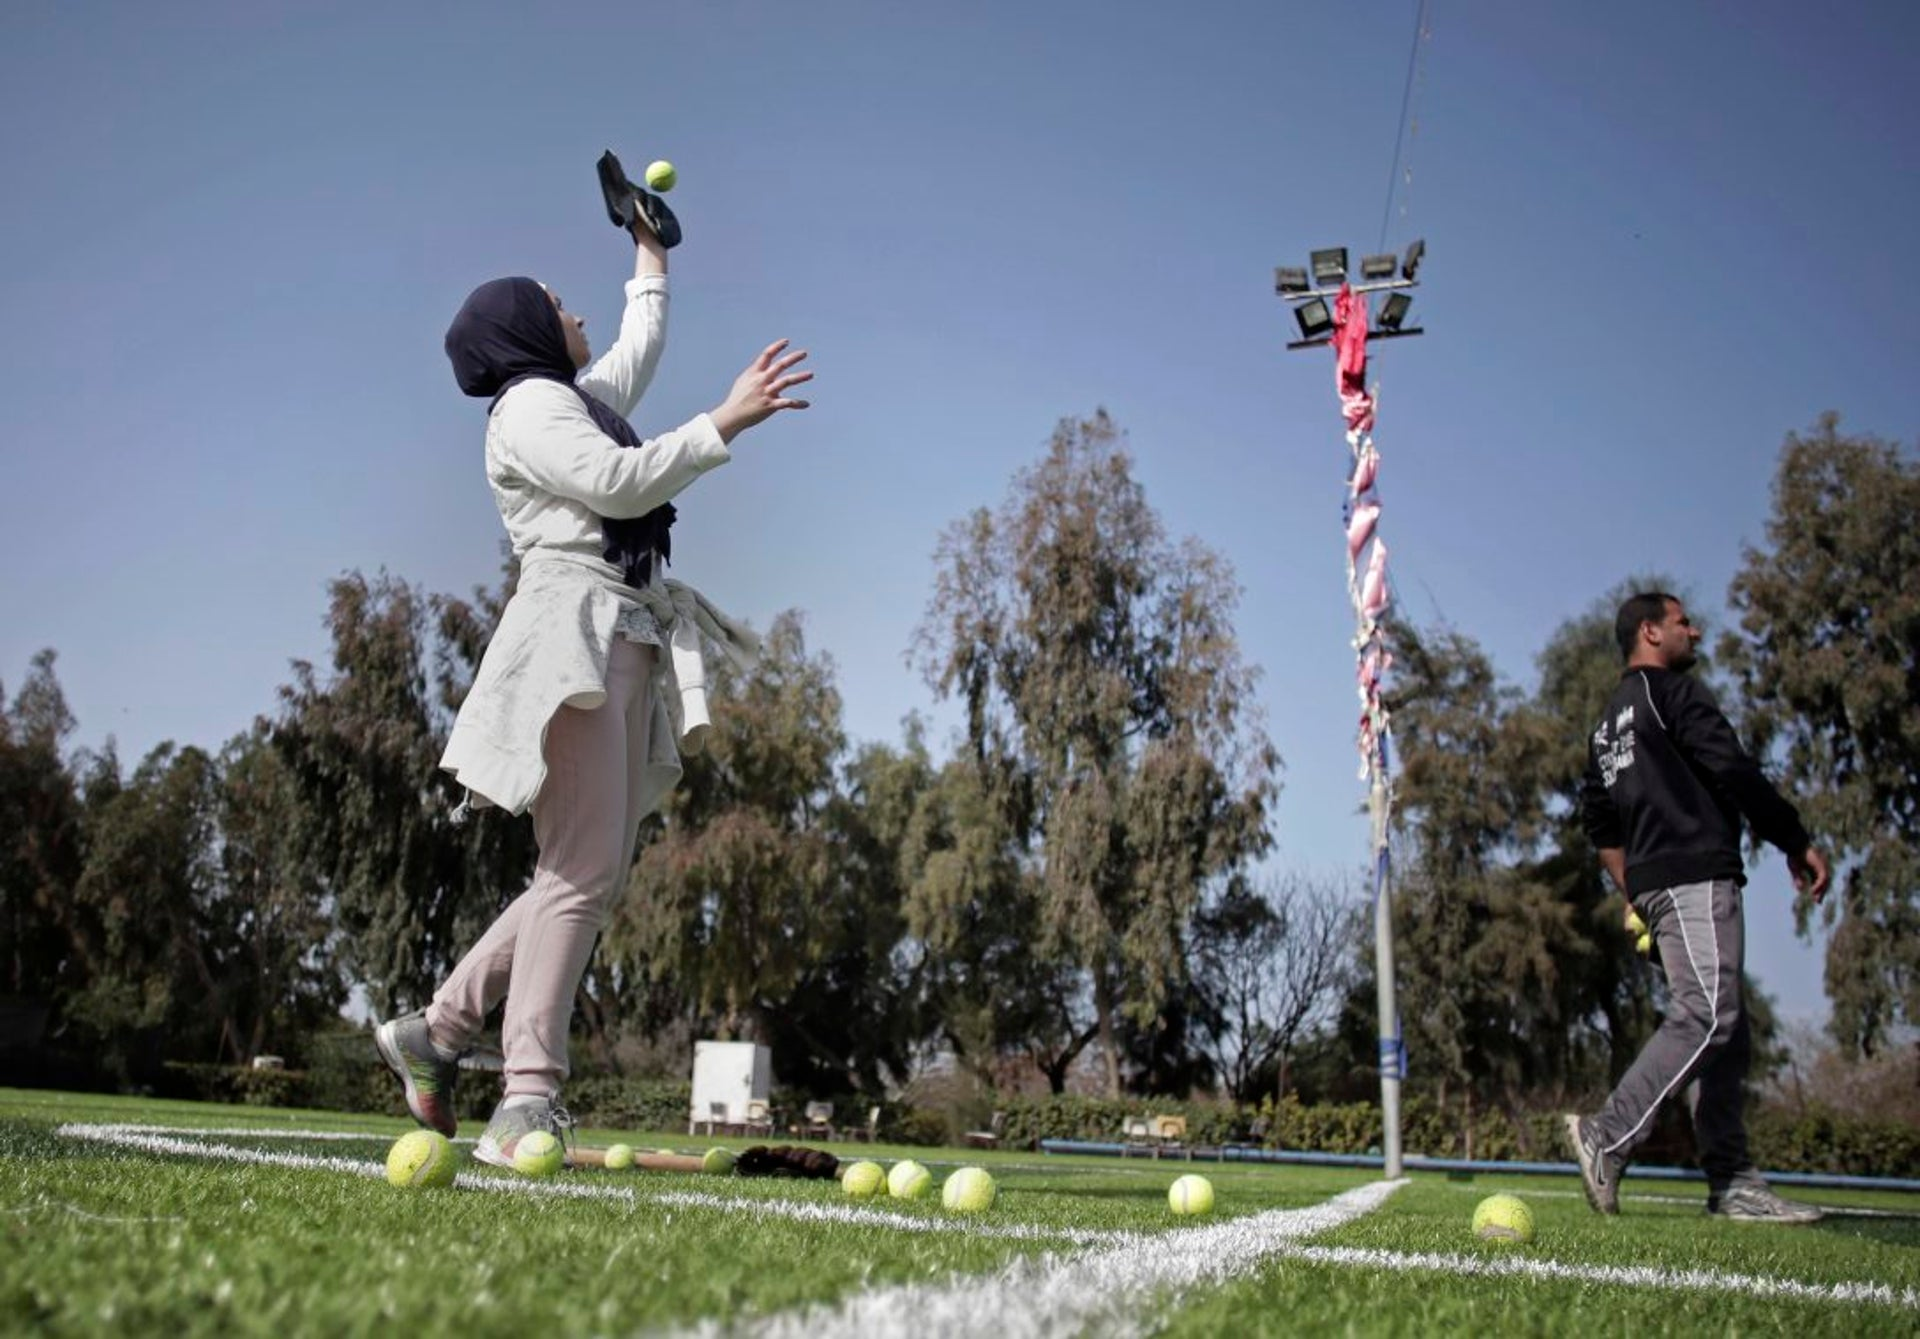 In this Sunday, March 19, 2017 photo, Palestinian women train for an all women's baseball game, on a soccer field in Khan Younis, southern Gaza Strip. The female players wear hijabs, not helmets, toss around tennis balls, not baseballs and their leather gloves have been replaced by black imitations knitted from fabric. The group of young women are trying to bring baseball to Gaza -- giving the traditional American pastime a distinctly local feel.